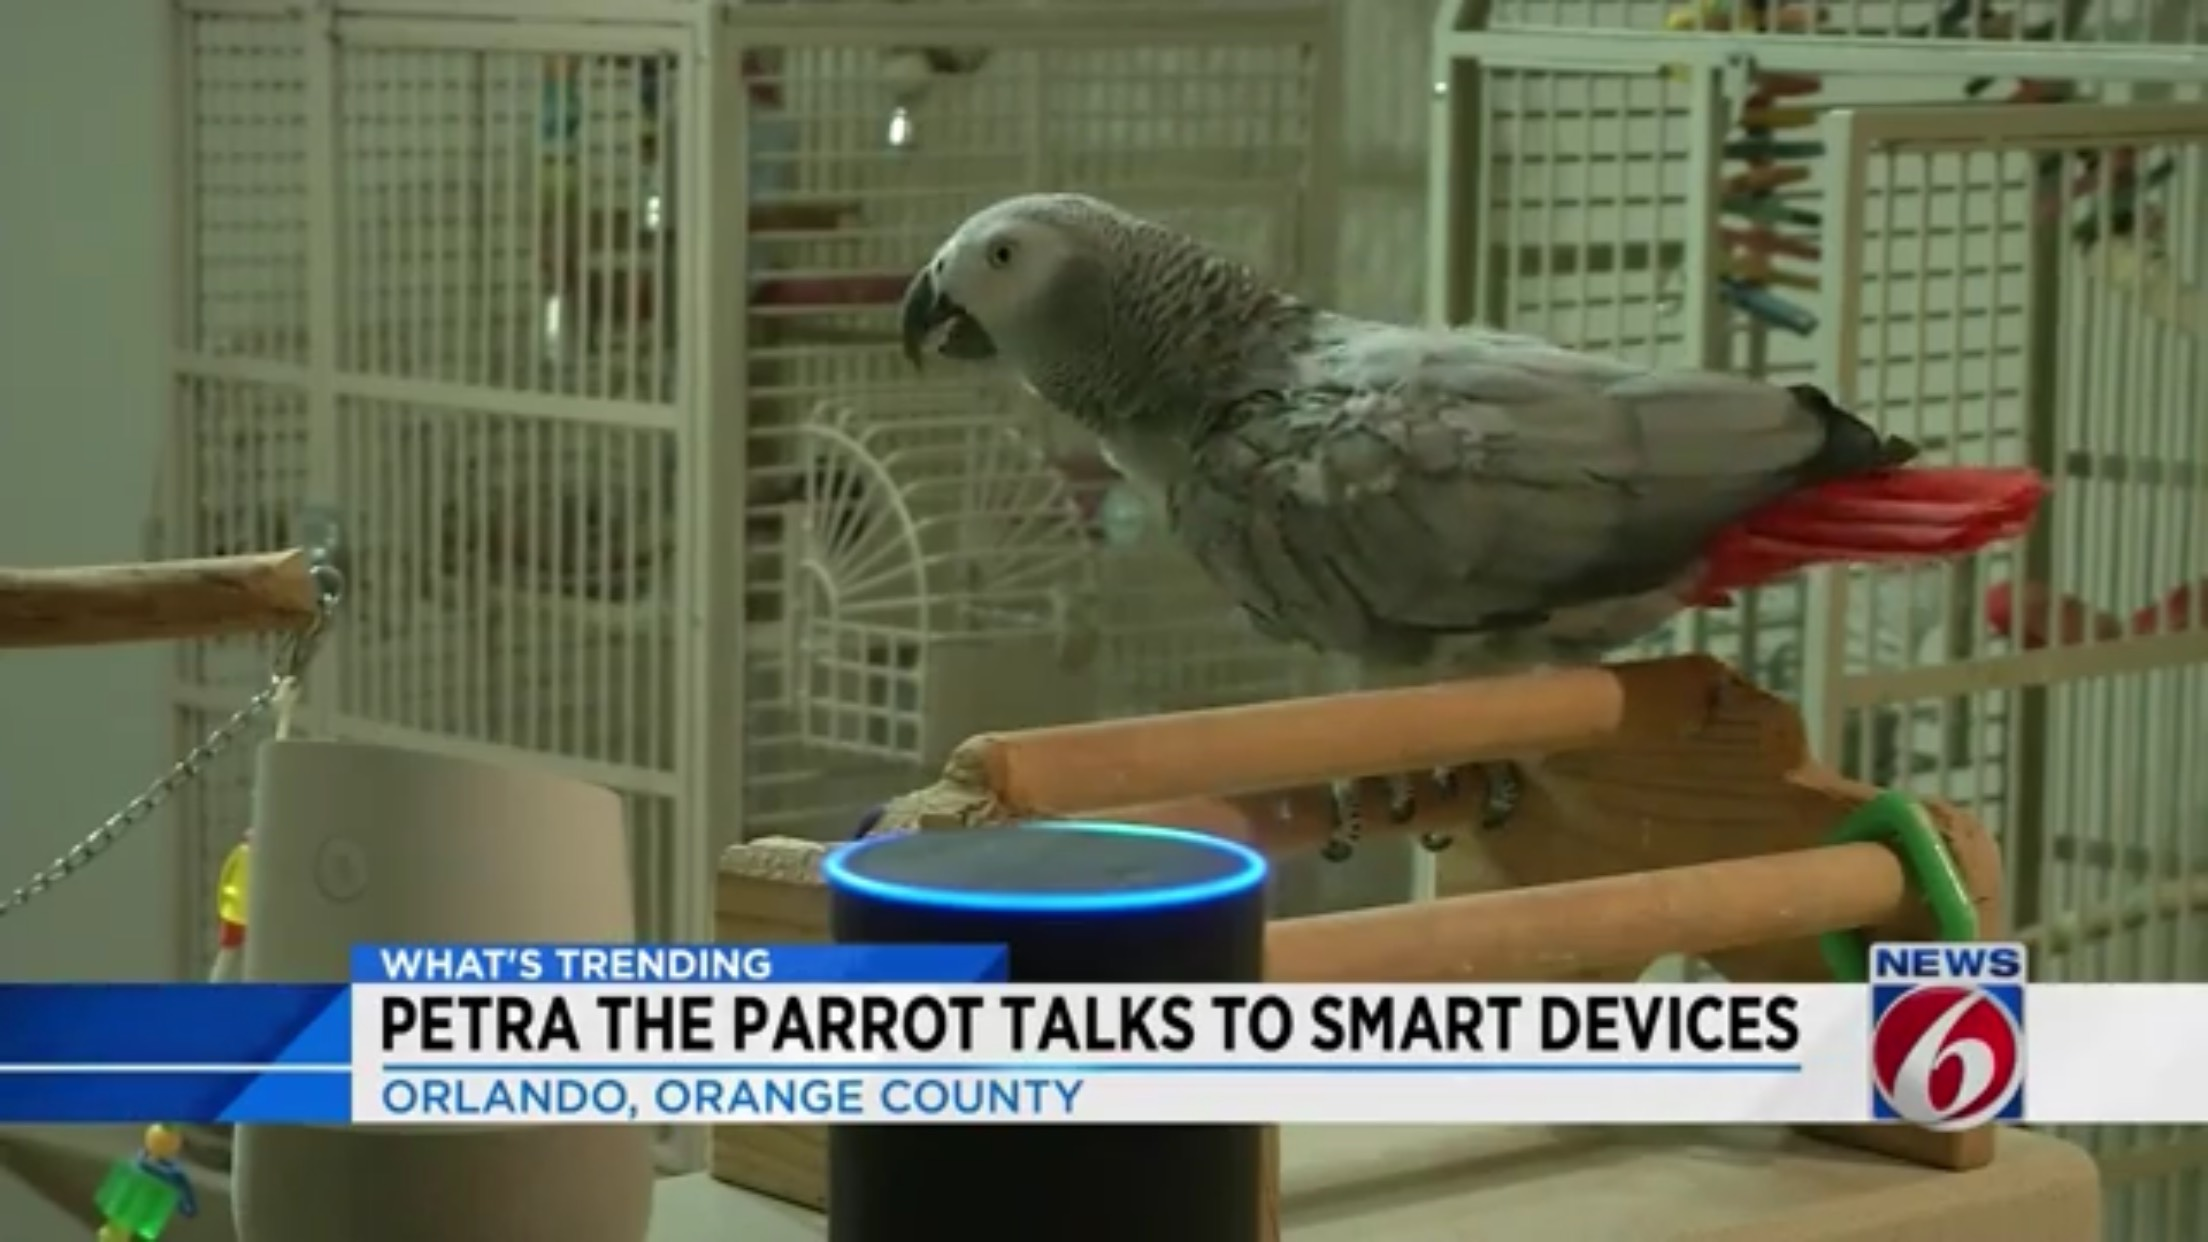 Petra The Parrot Talks To Smart Devices